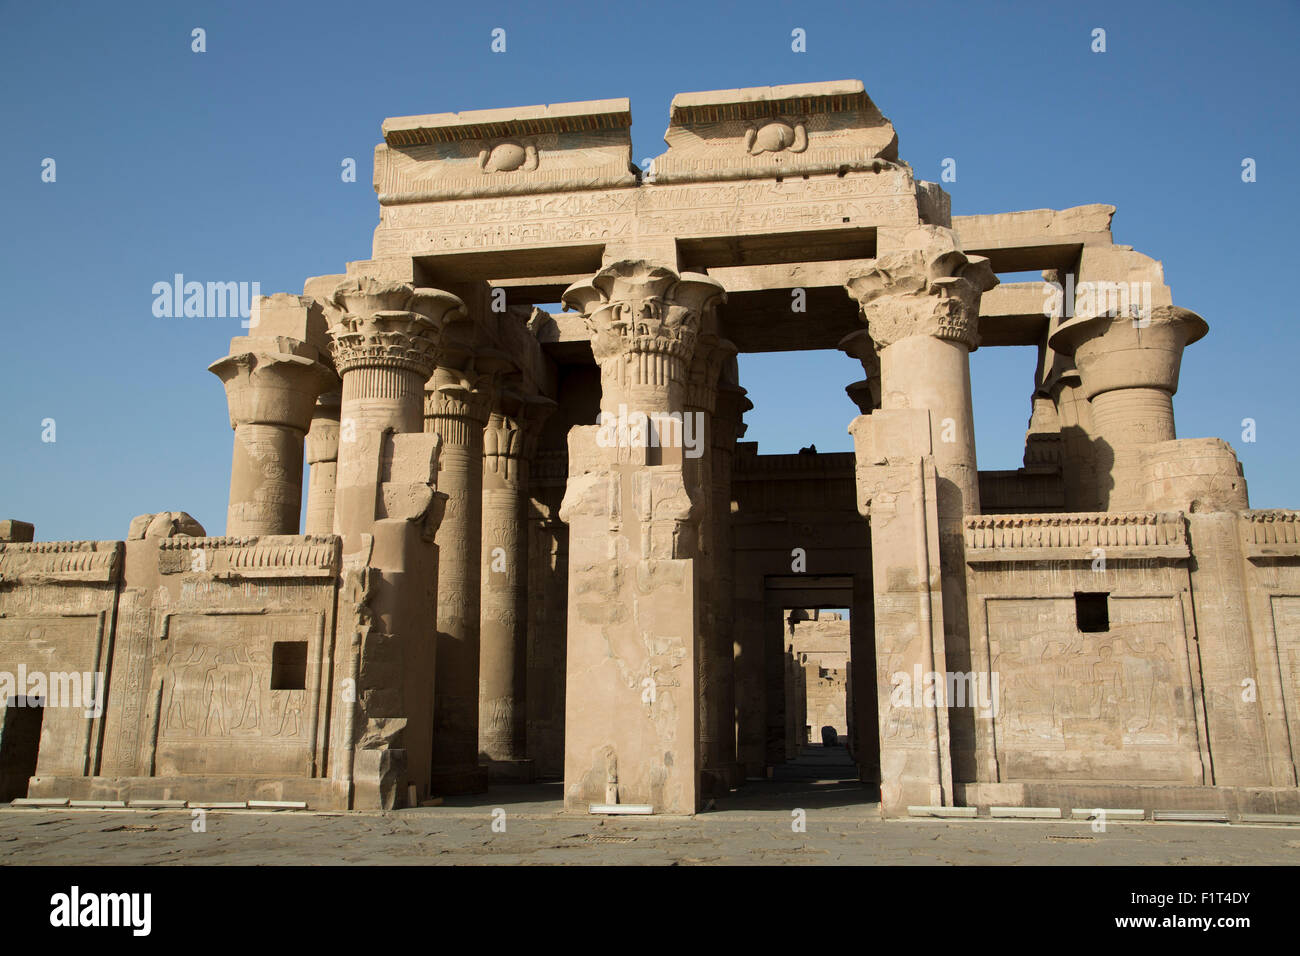 Temple of Haroeris and Sobek, Kom Ombo, Egypt, North Africa, Africa Stock Photo